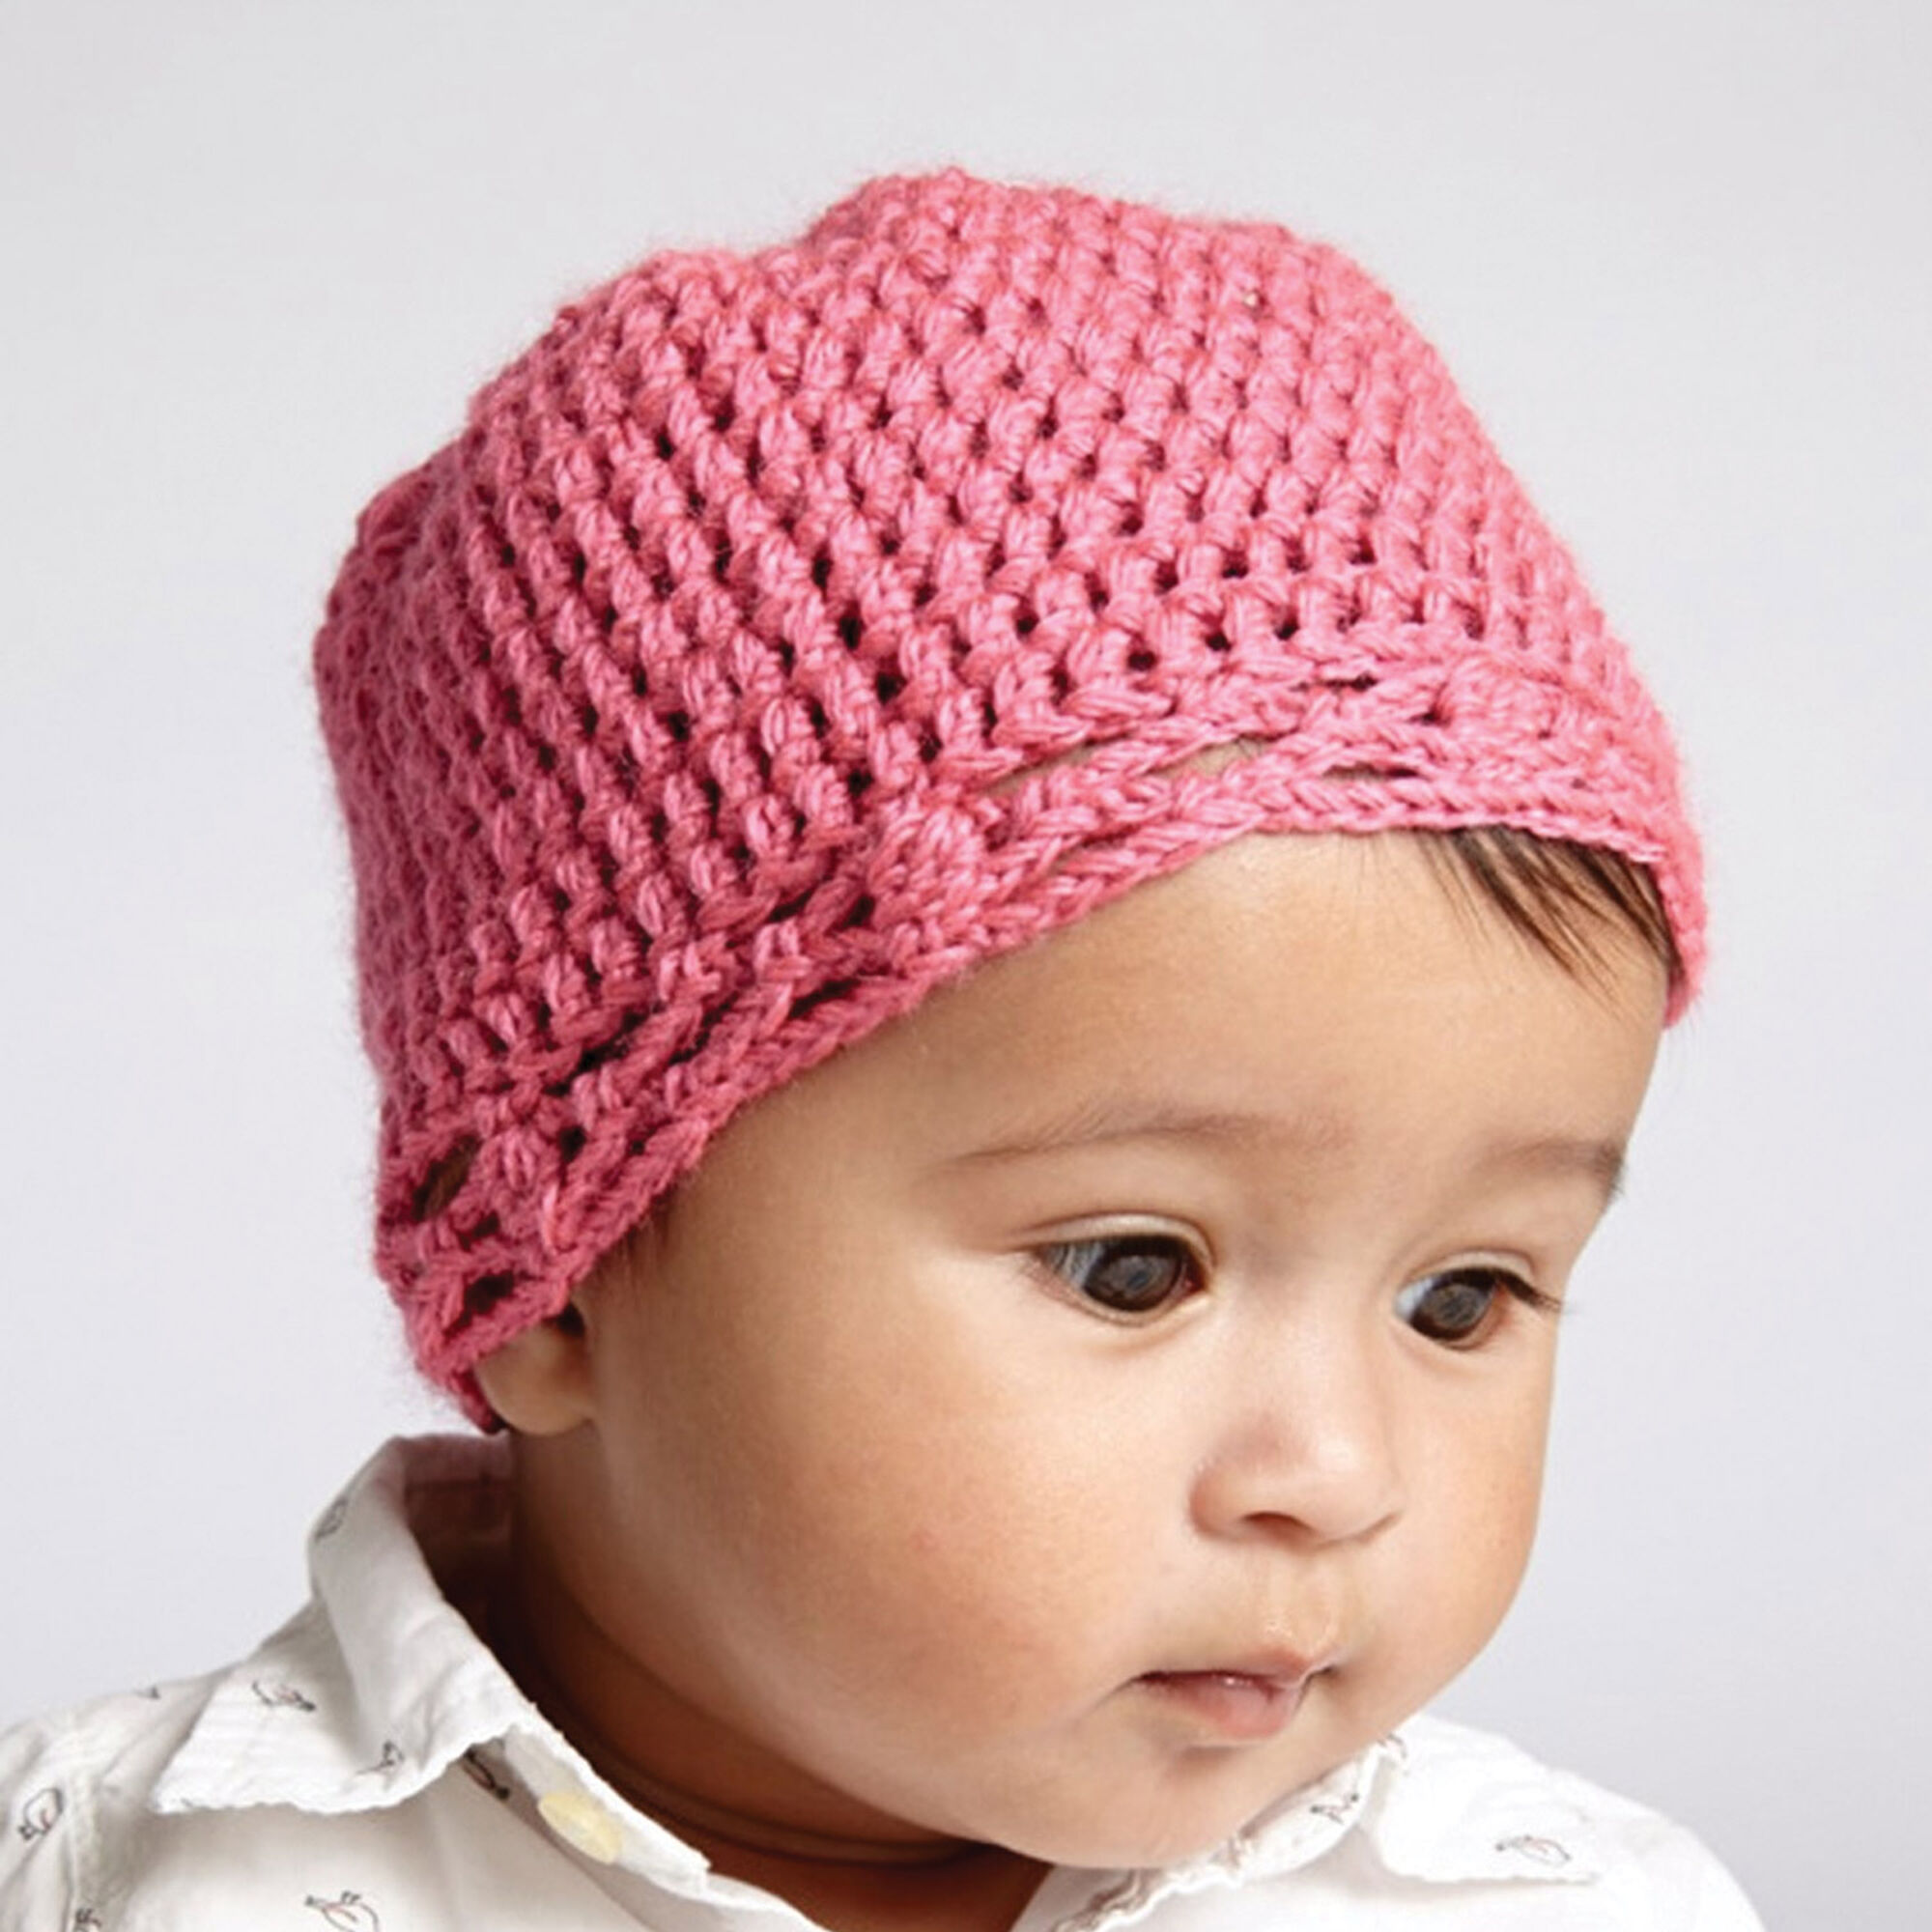 Crochet Baby Bonnet Pattern Best Design Ideas